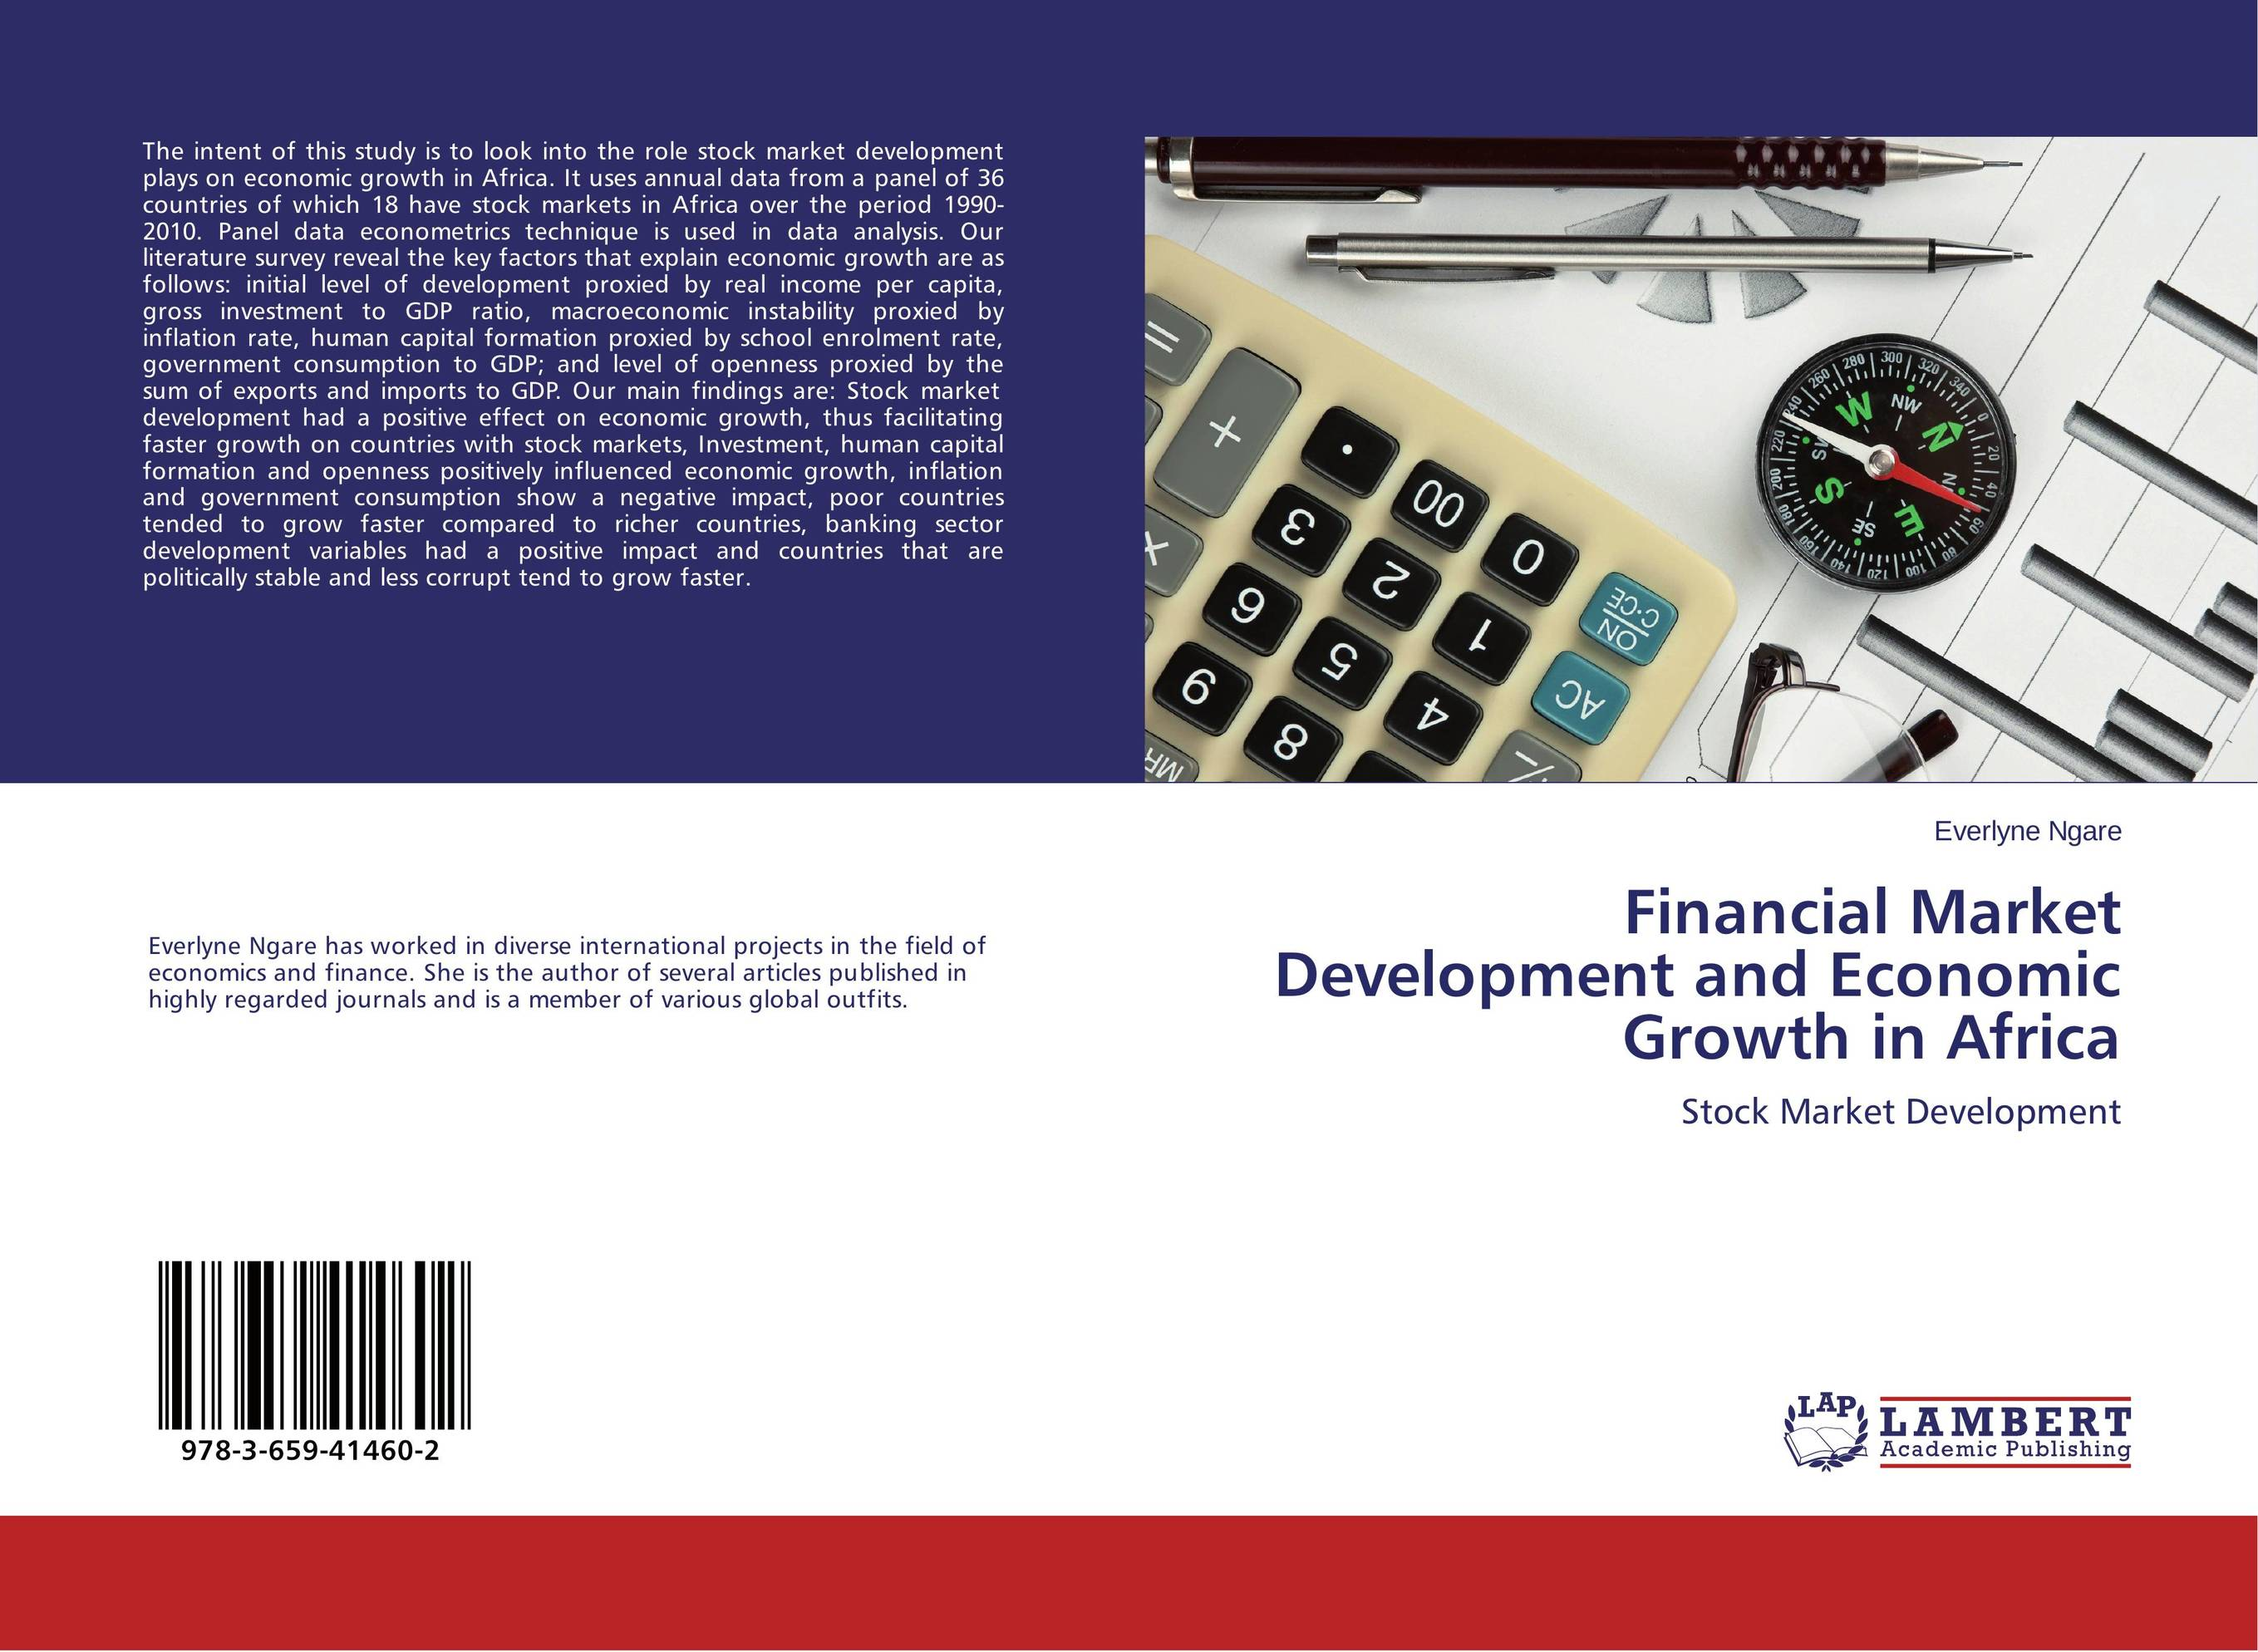 Financial Market Development and Economic Growth in Africa impact of stock market performance indices on economic growth